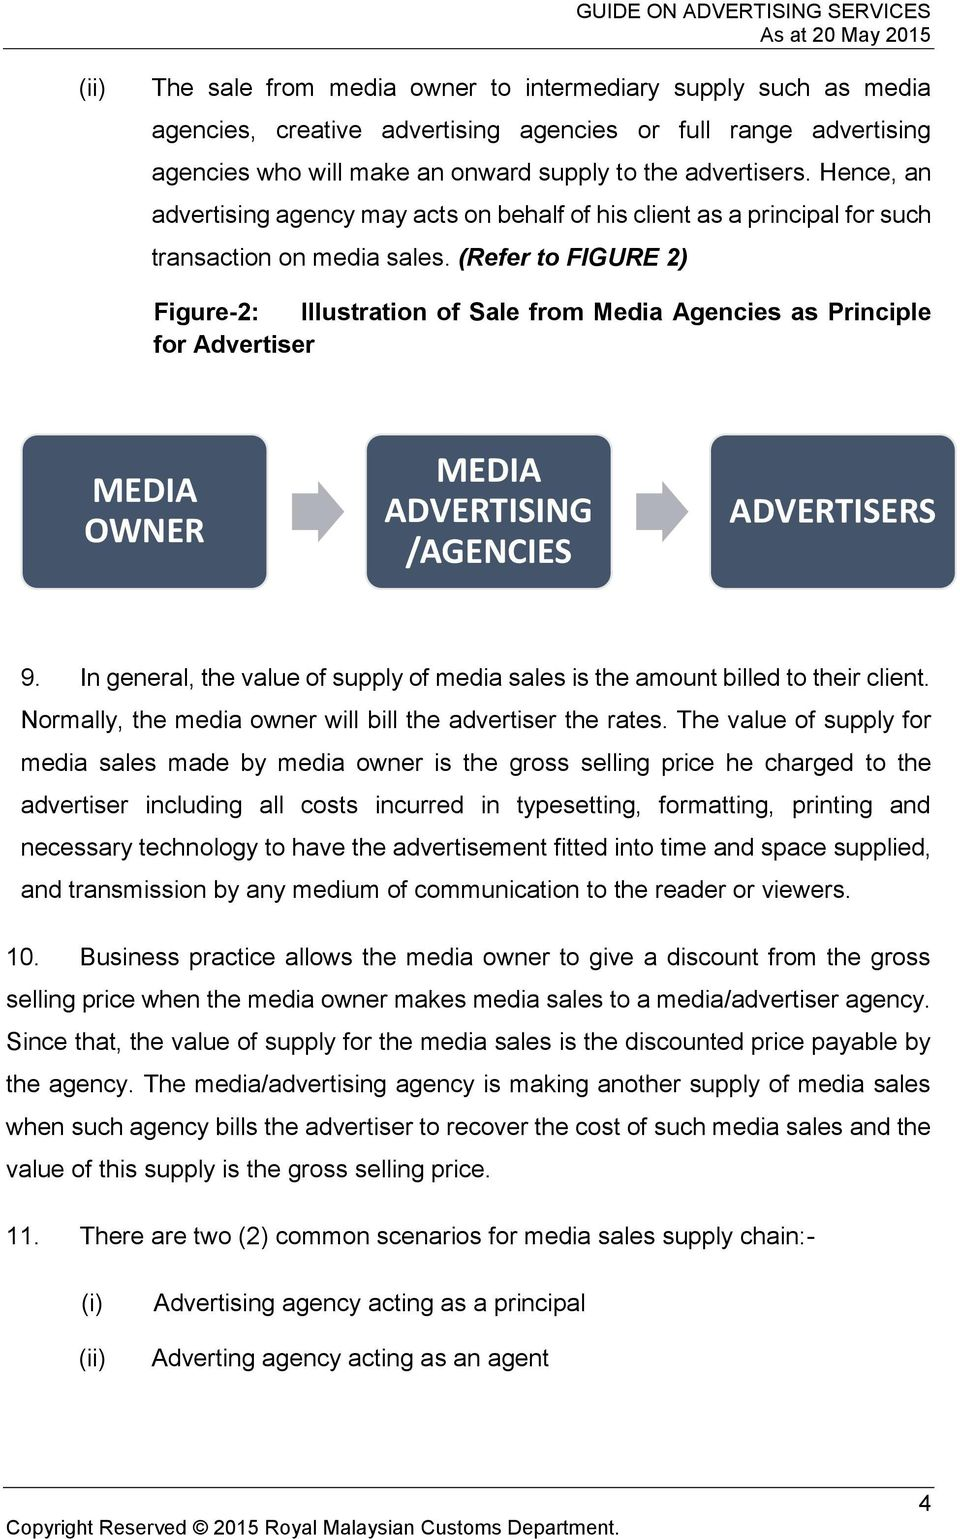 (Refer to FIGURE 2) Figure-2: Illustration of Sale from Media Agencies as Principle for Advertiser MEDIA OWNER MEDIA ADVERTISING /AGENCIES ADVERTISERS 9.